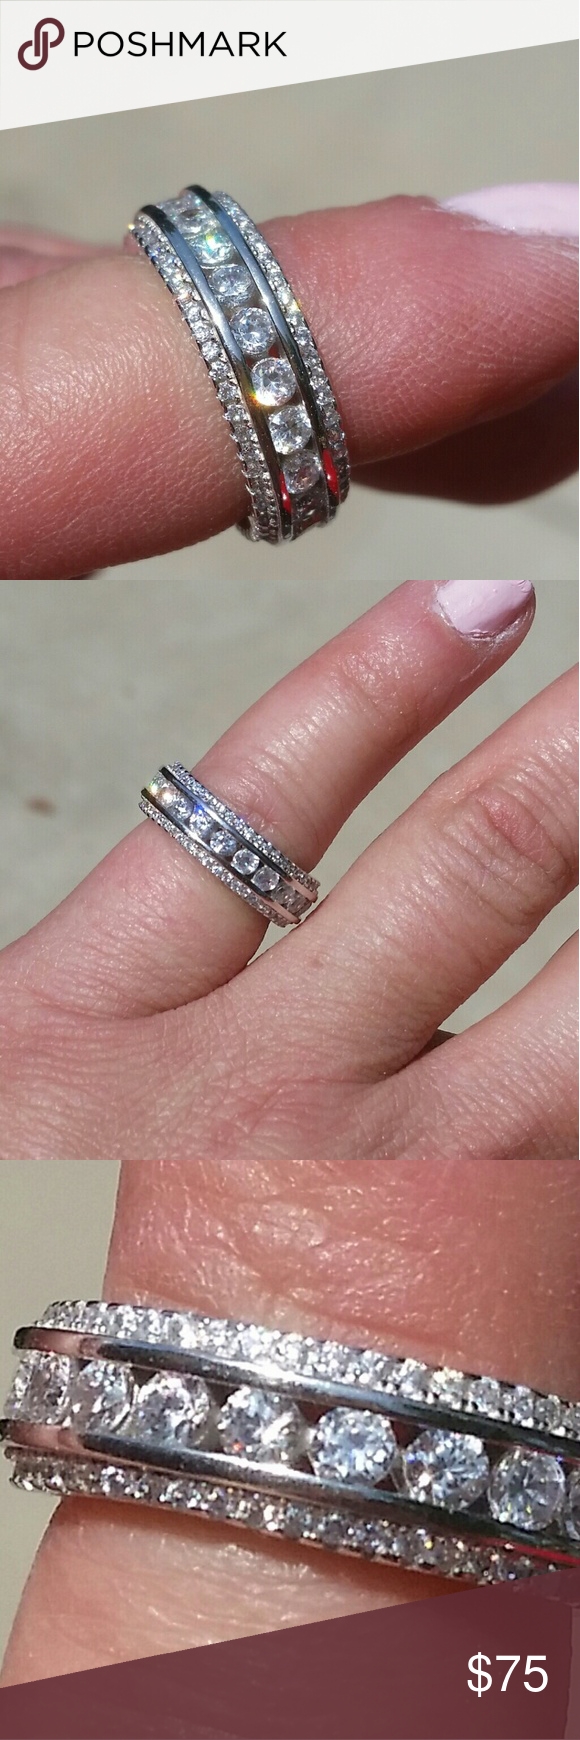 CZ Silver Wedding Ring/Wedding Band This is amazing cubic zirconia ...